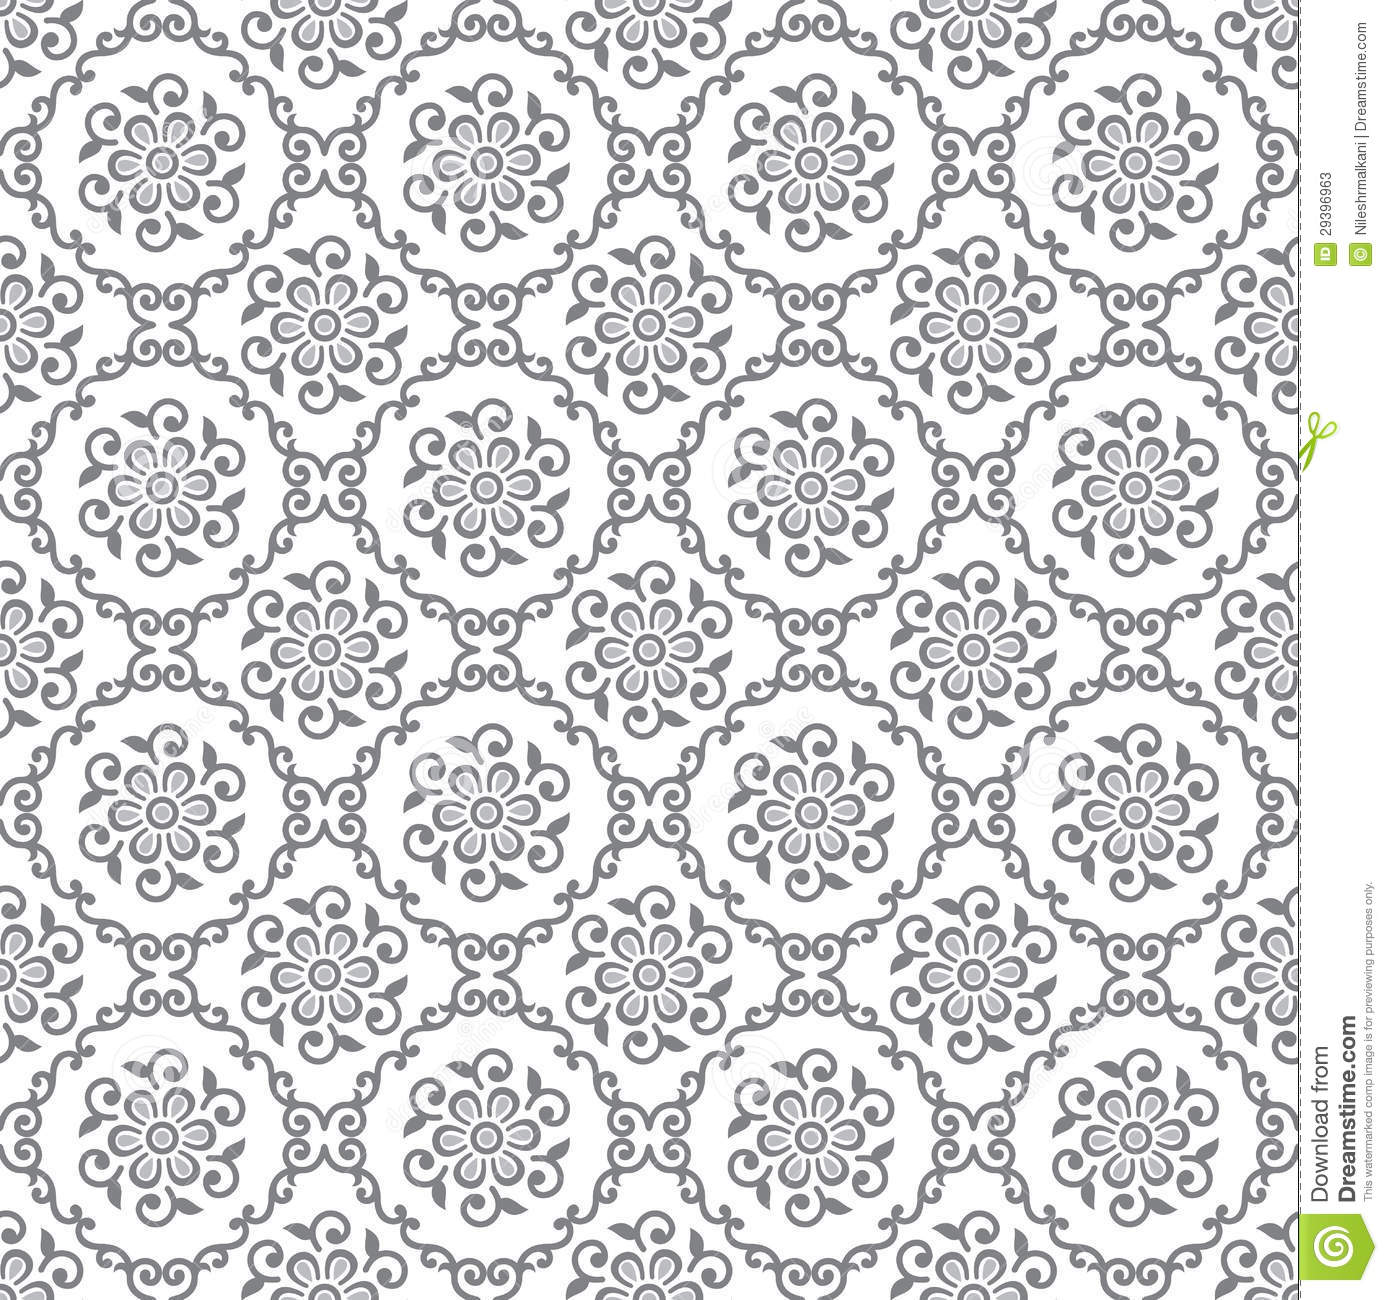 Seamless Silver Floral Royal Wallpaper Illustration 29396963